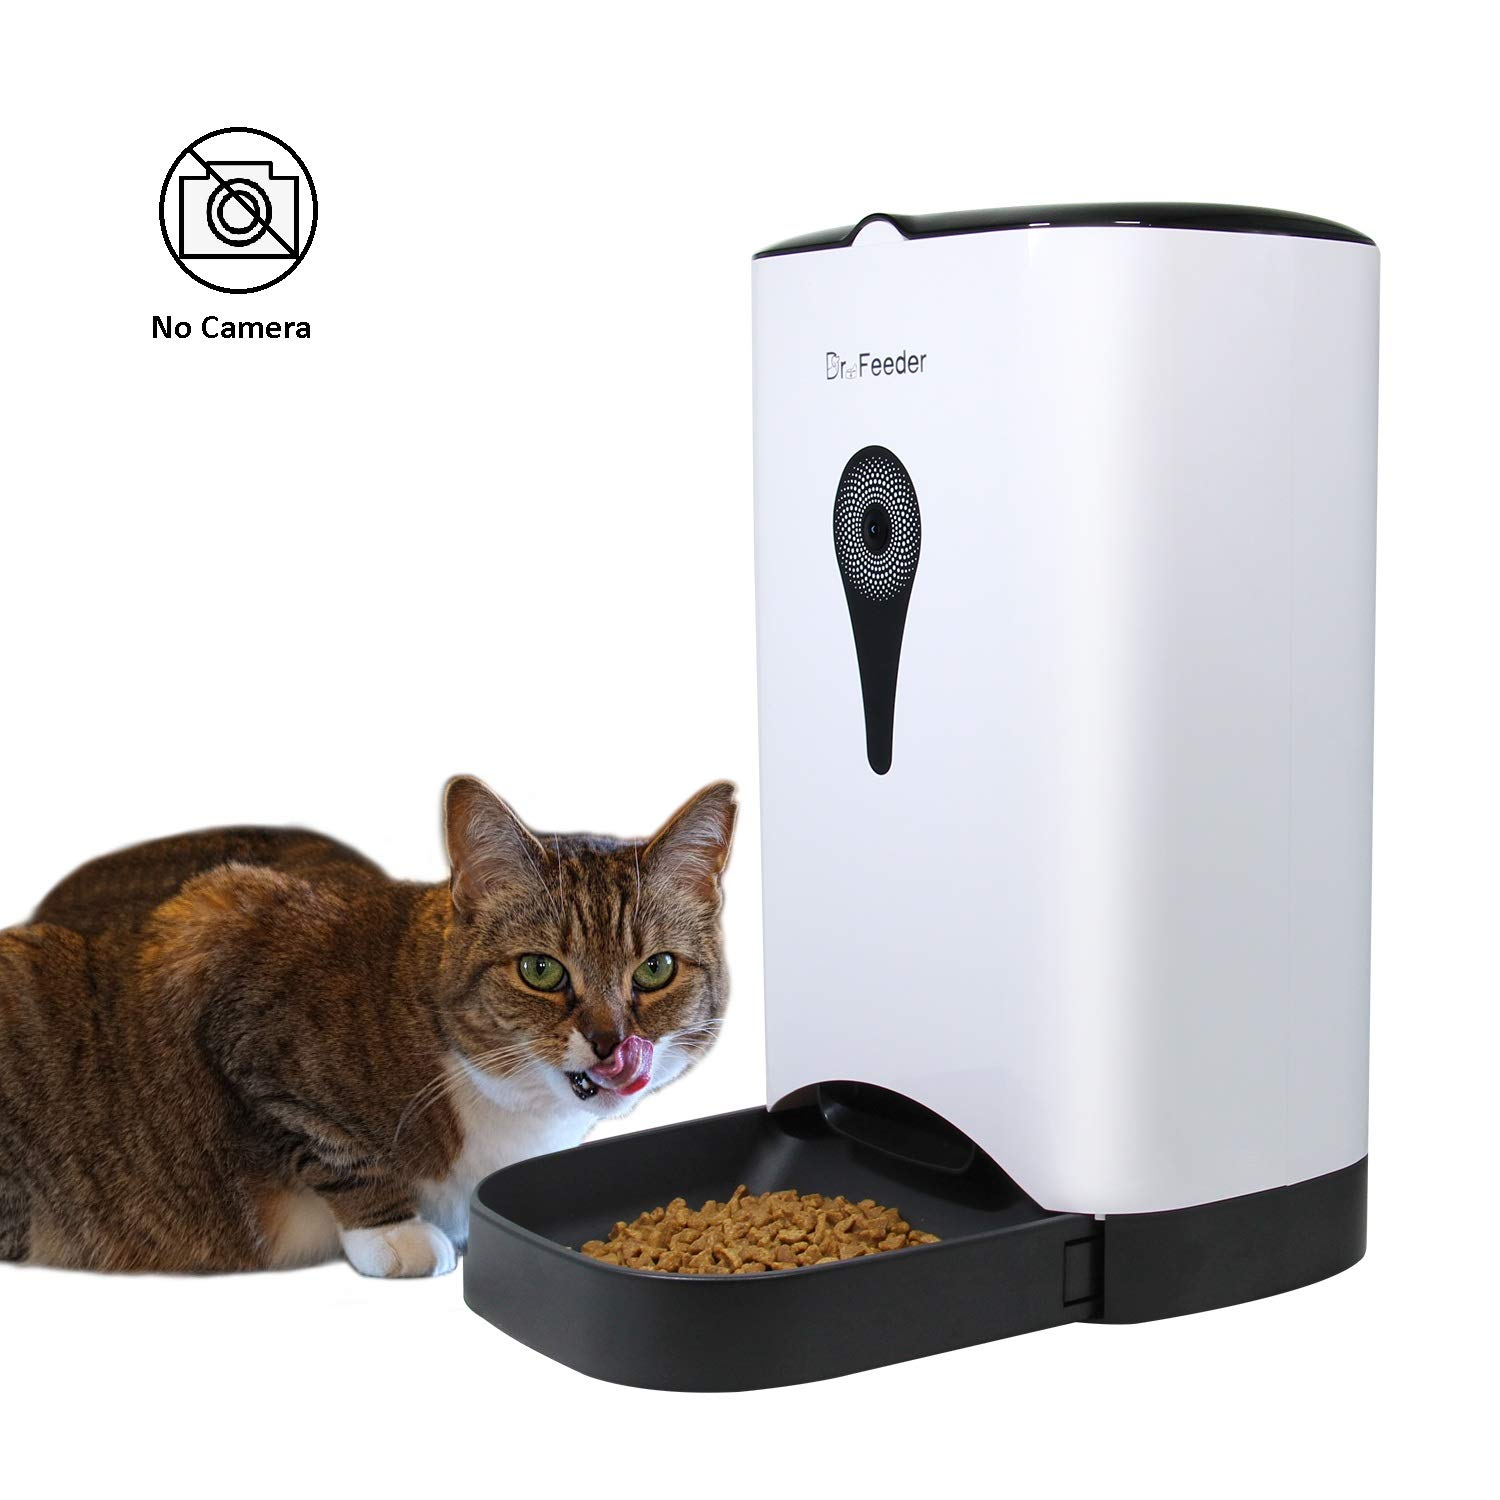 4.5L Automatic Cat Feeder No Camera, Smart Dog Food Dispenser Without App, White